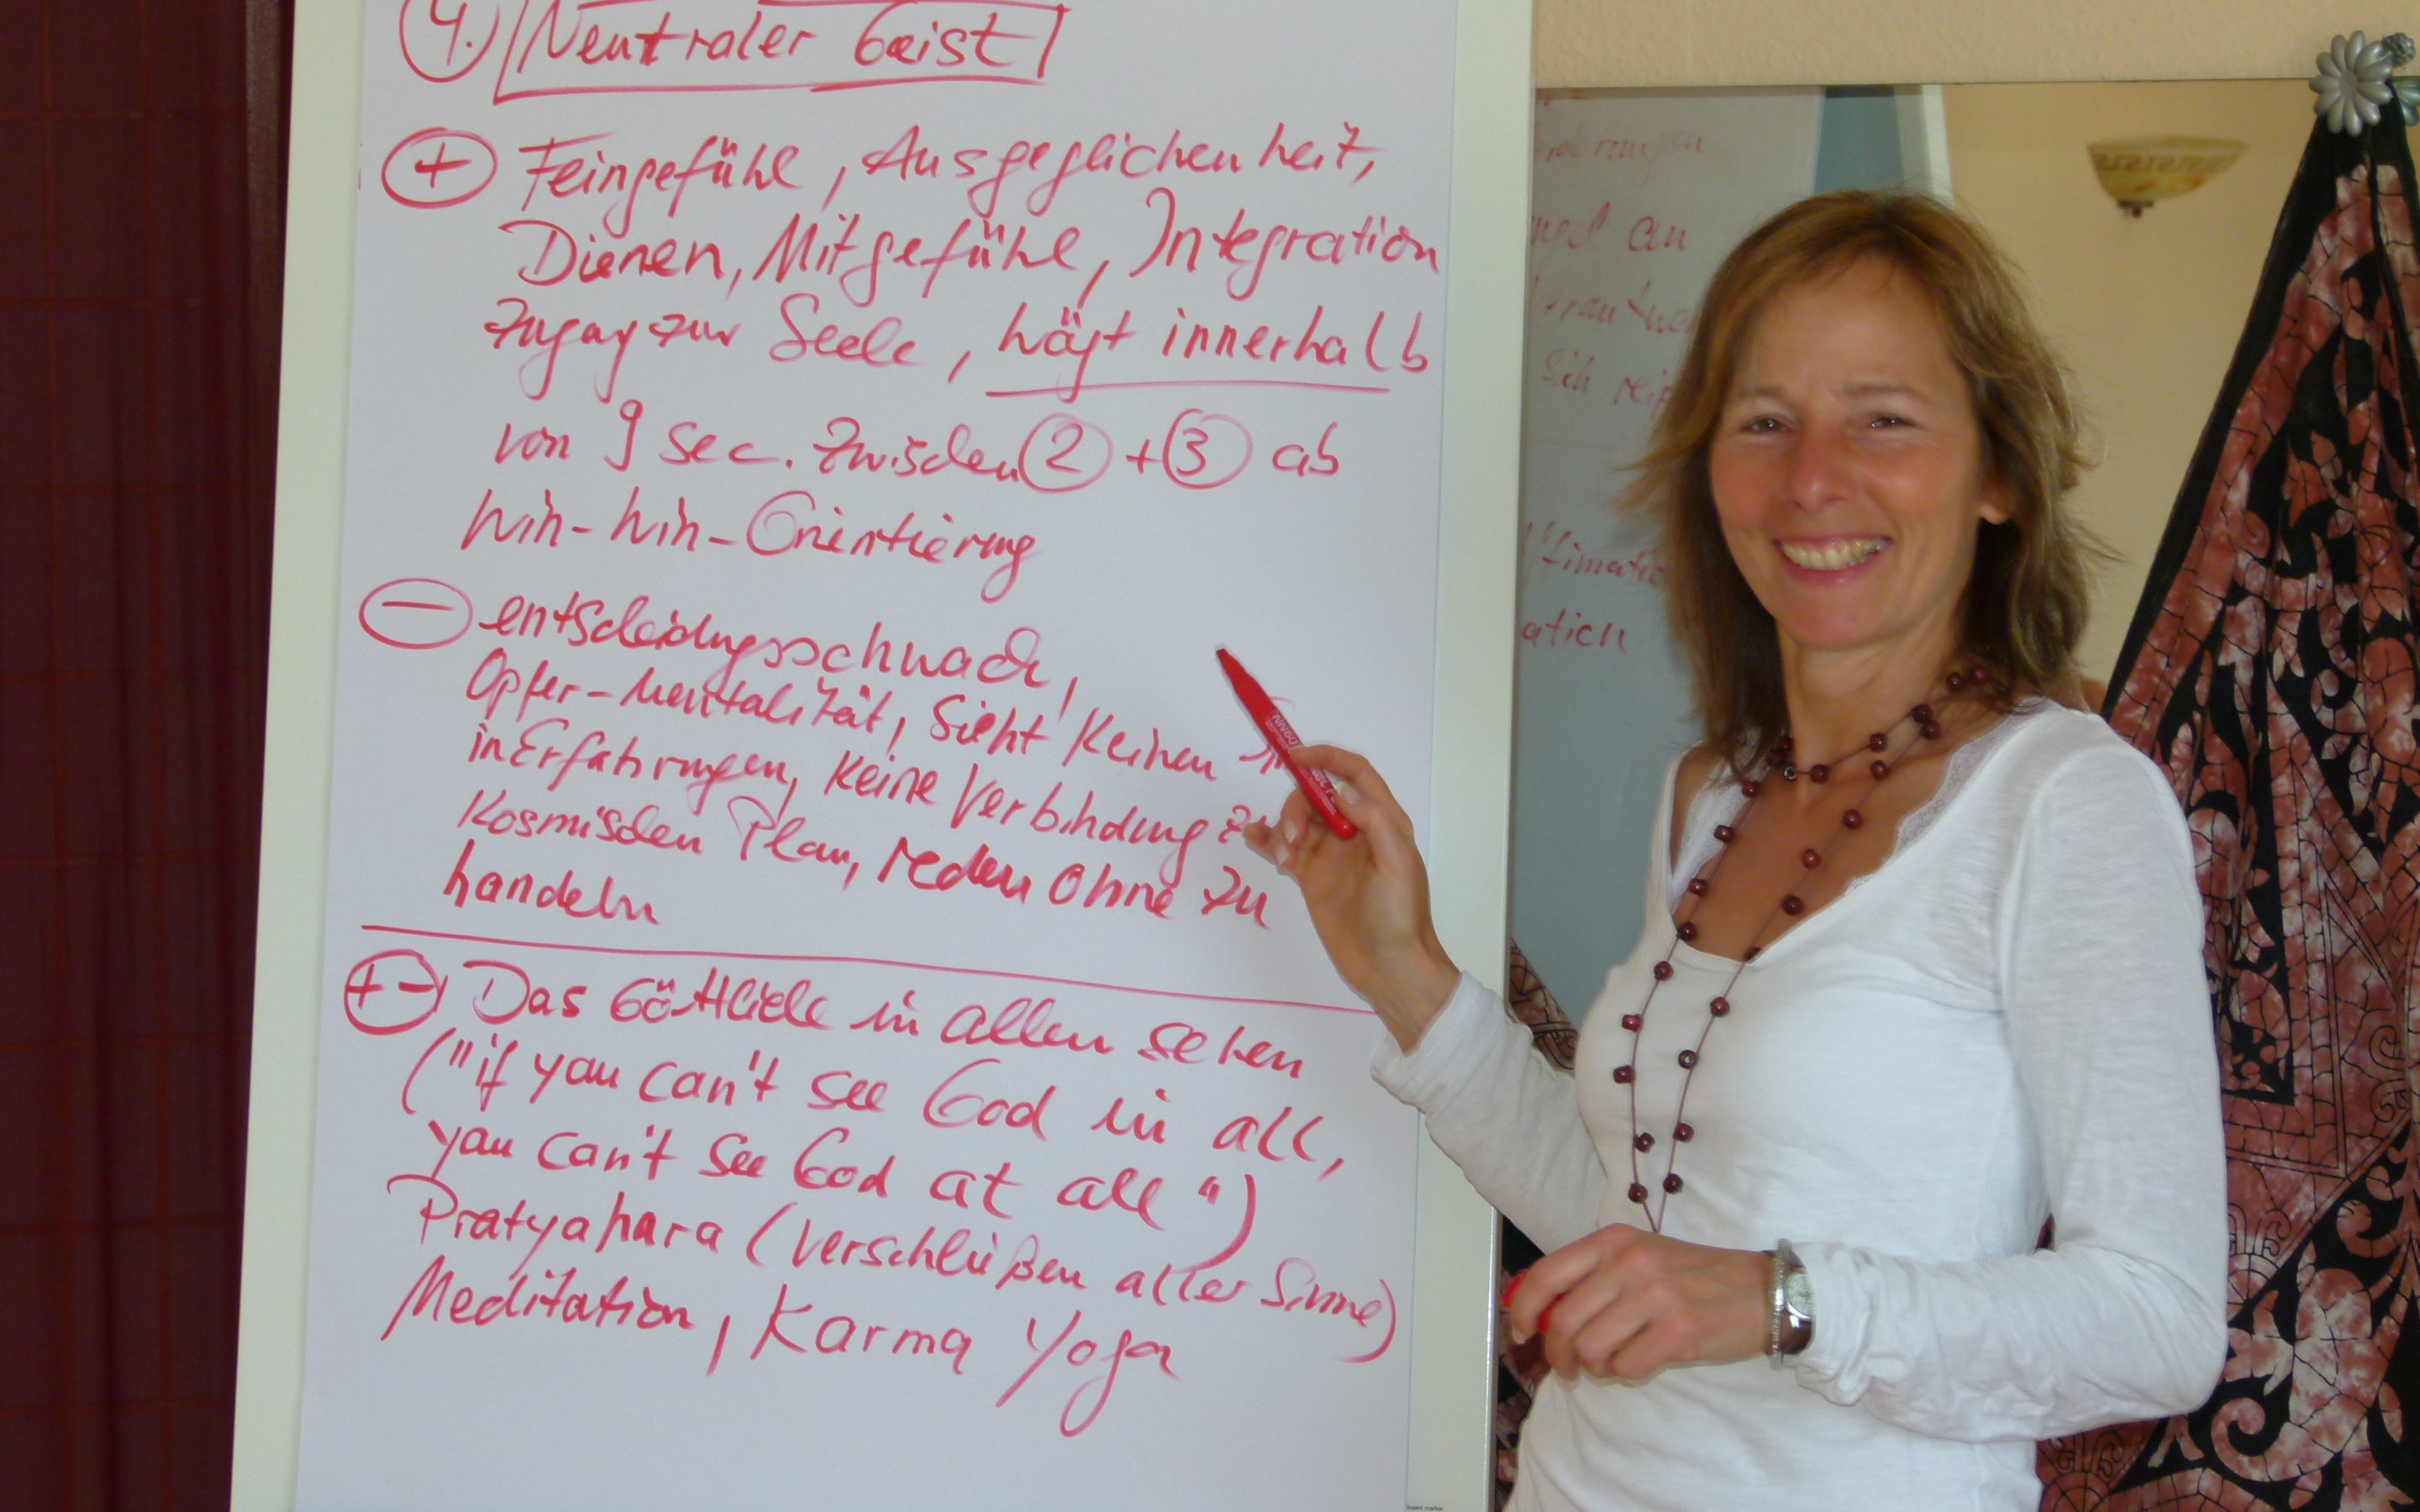 Anita_Klein_Yoga_Lehrerin_Yoga_Coach_Workshop